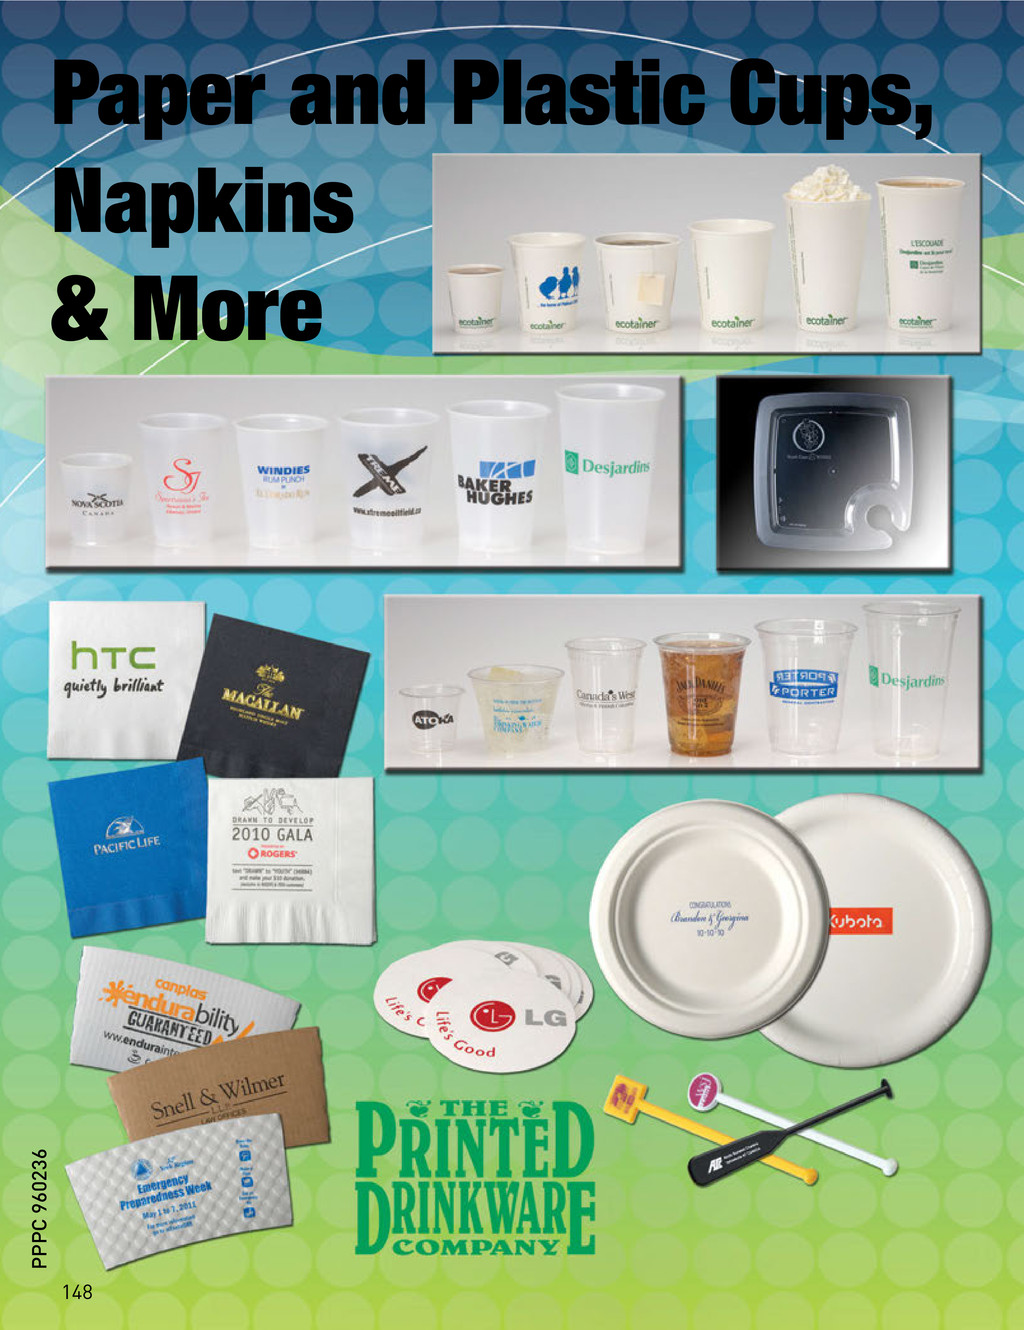 Paper and Plastic Cups, Napkins & More 148 PPPC...